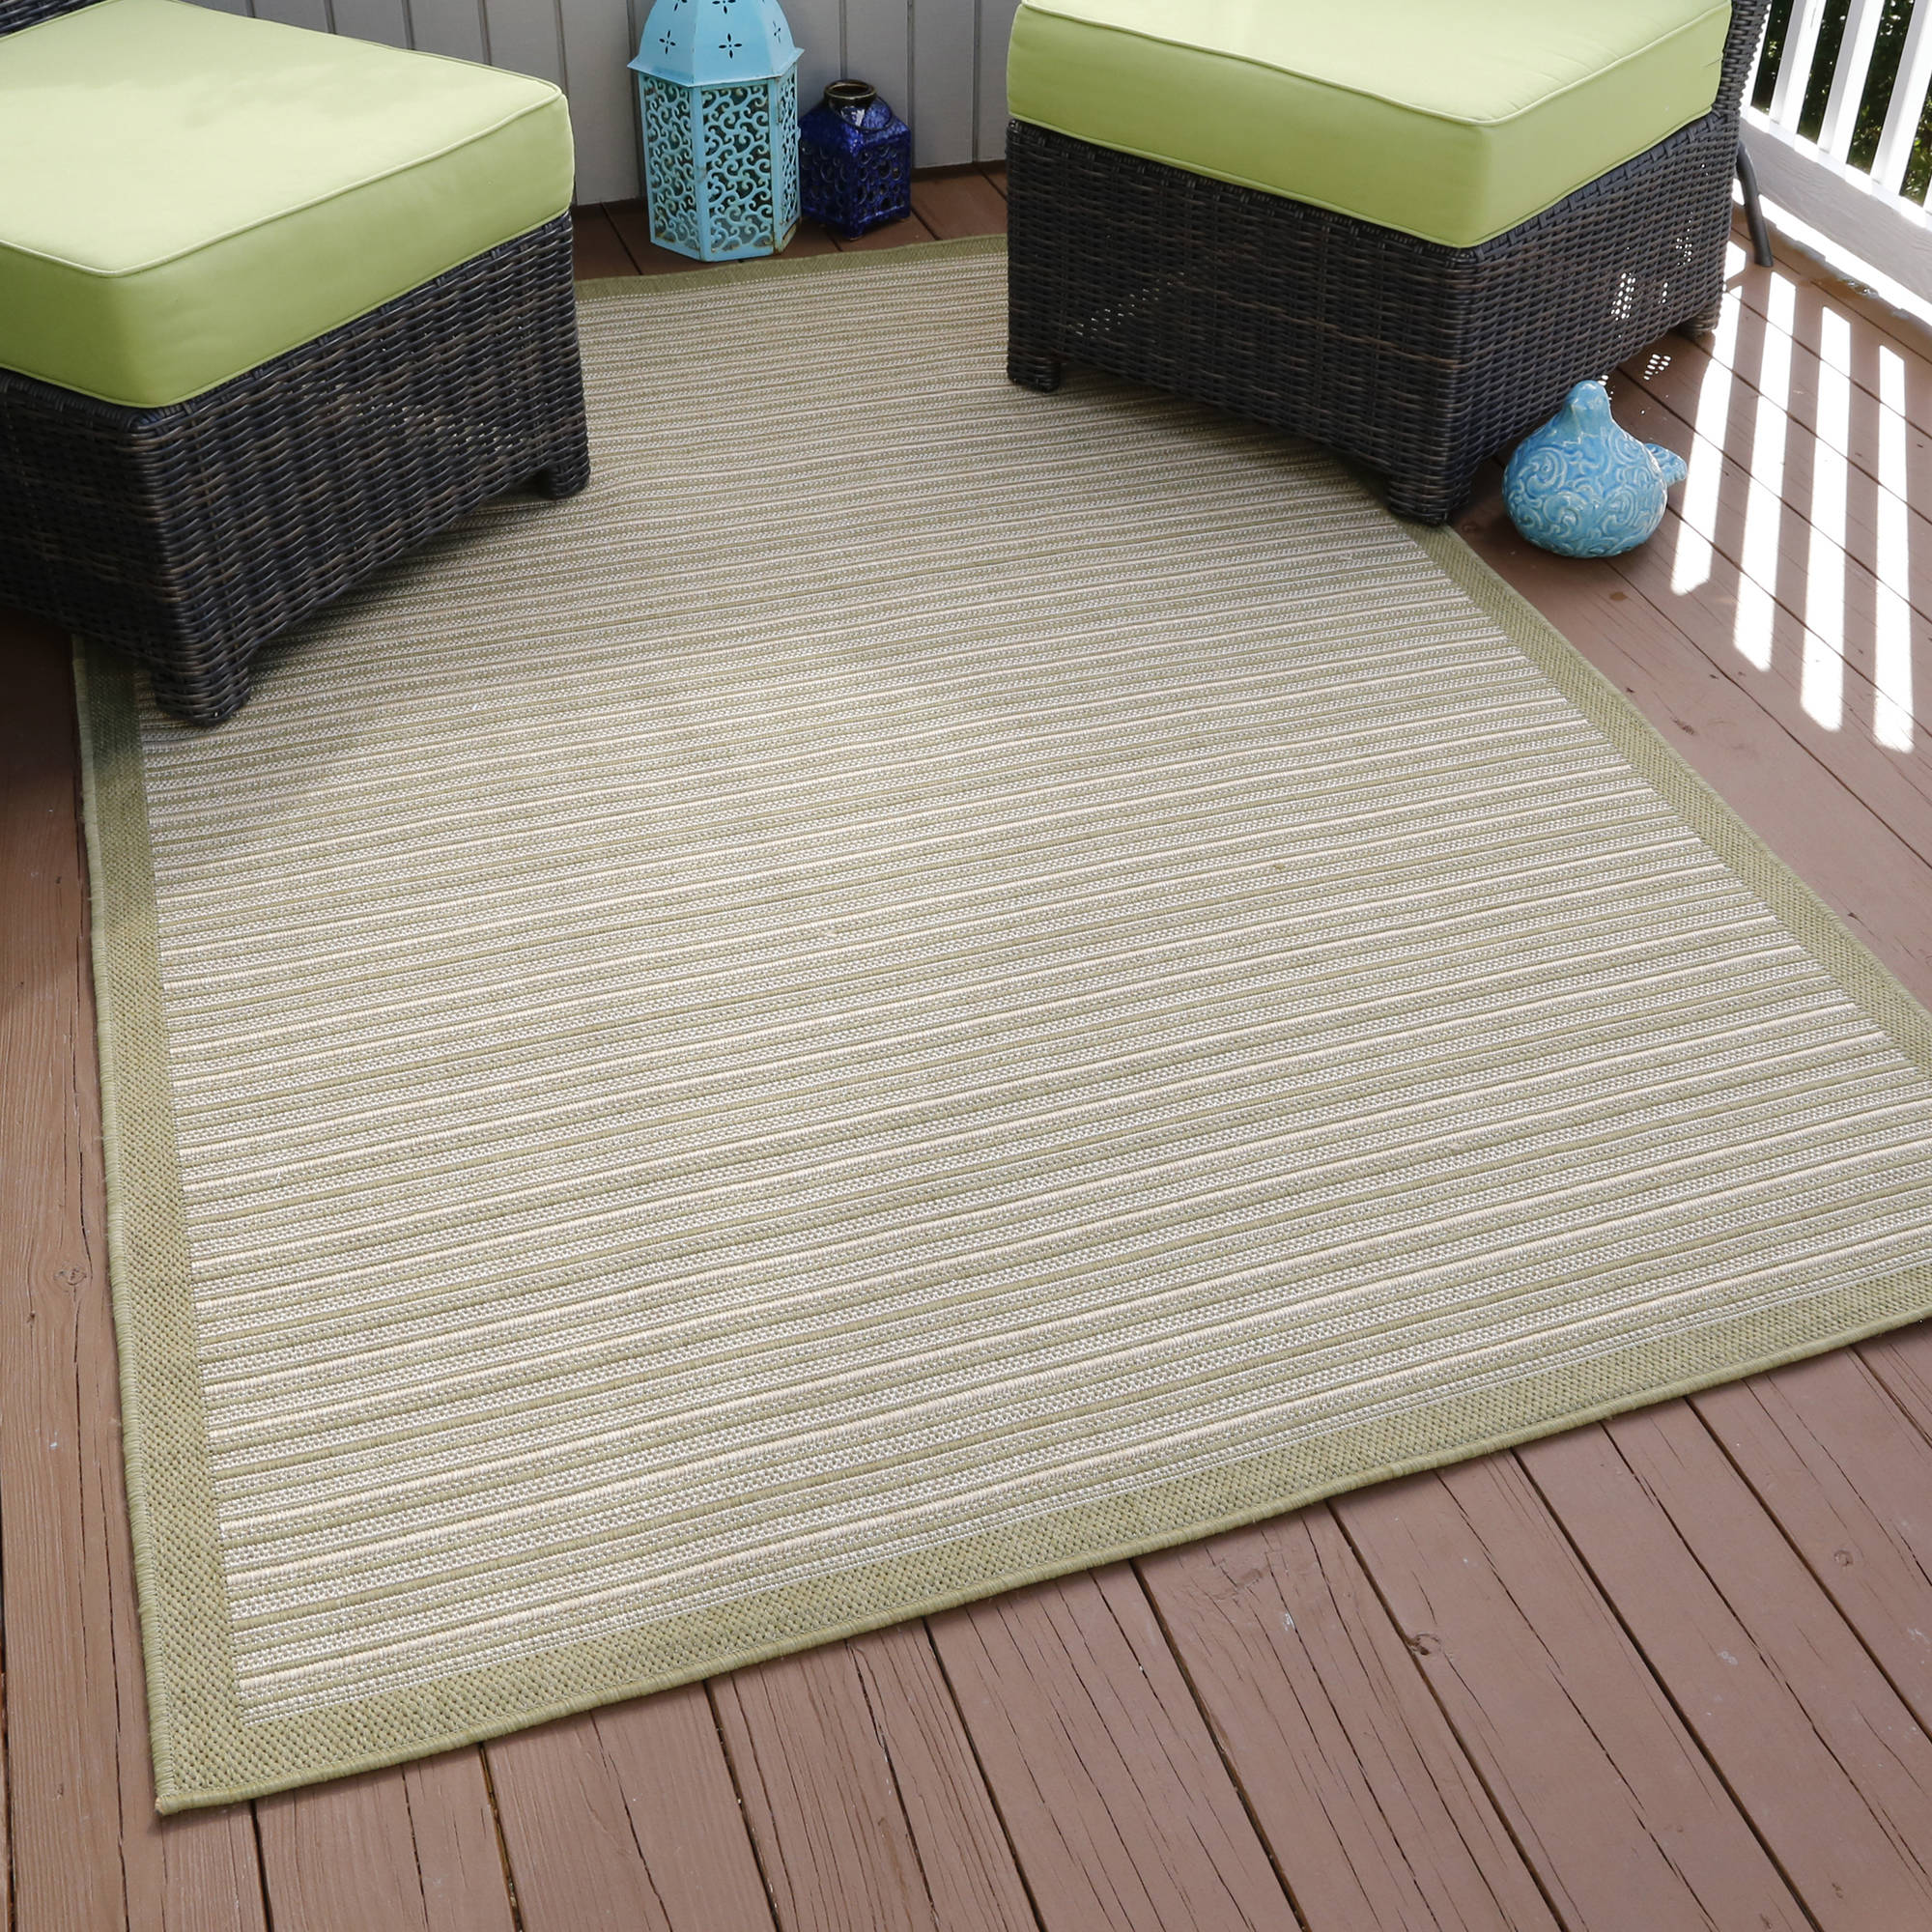 Somerset Home Casual Stripe Indoor/Outdoor Area Rug, Green, 5' x 7'7""